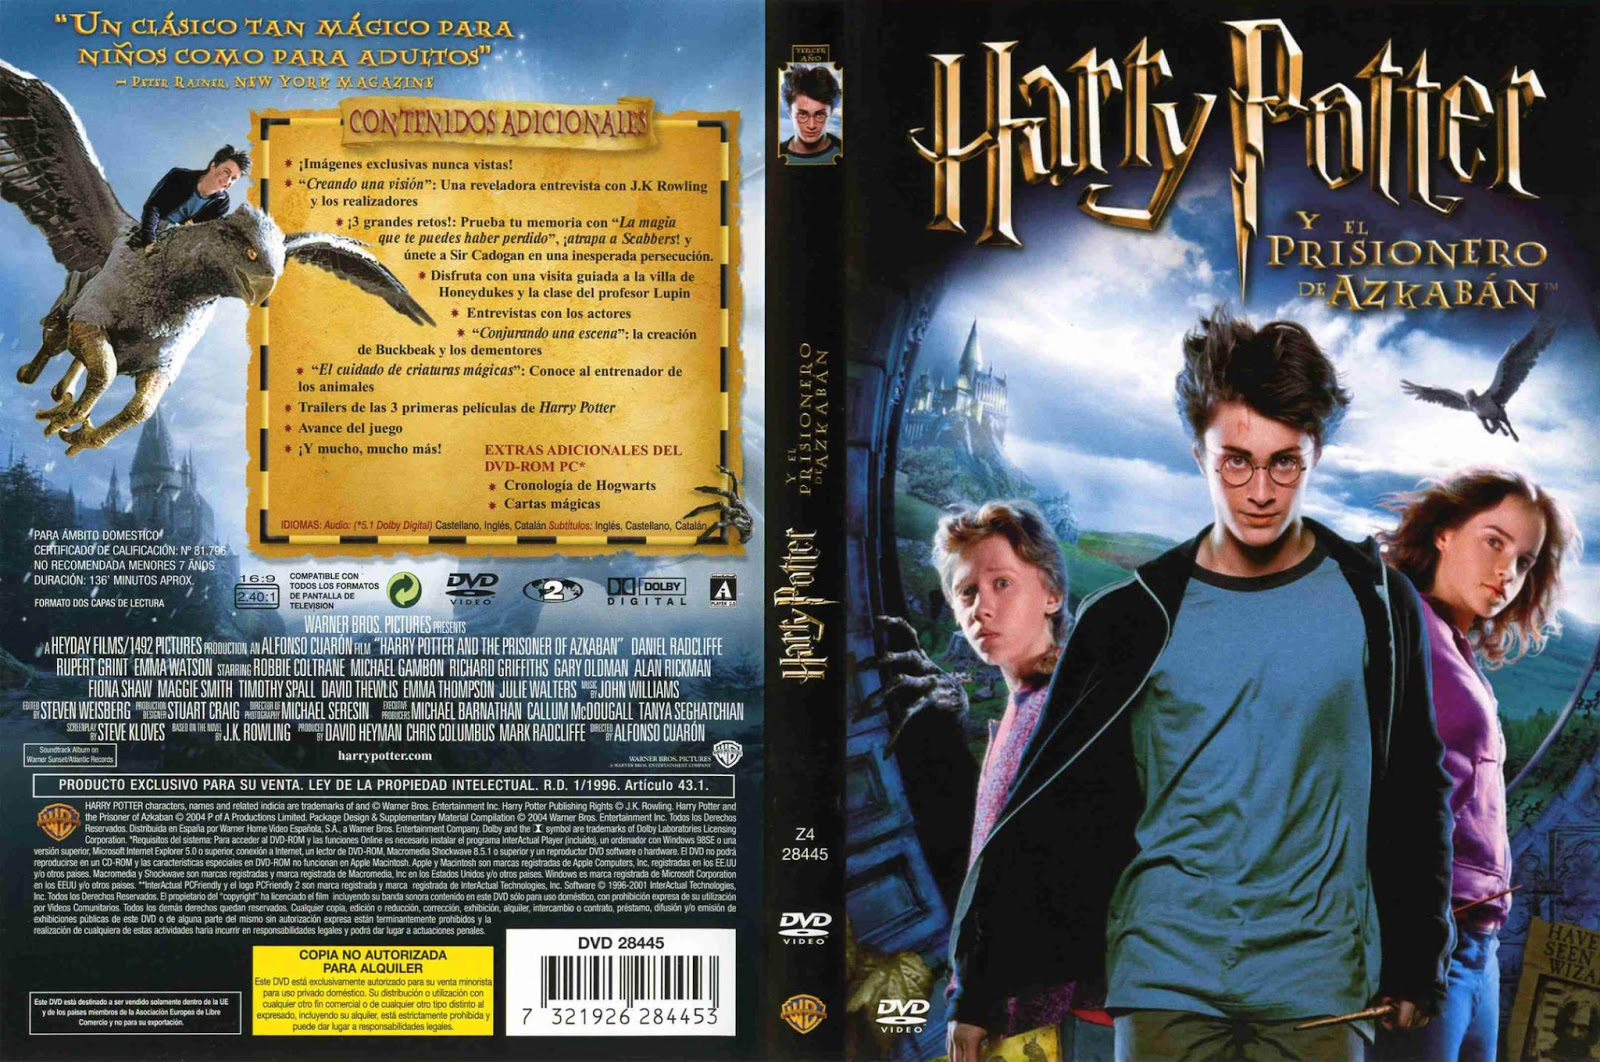 Harry Potter y el Prisionero de Azkaban DVD